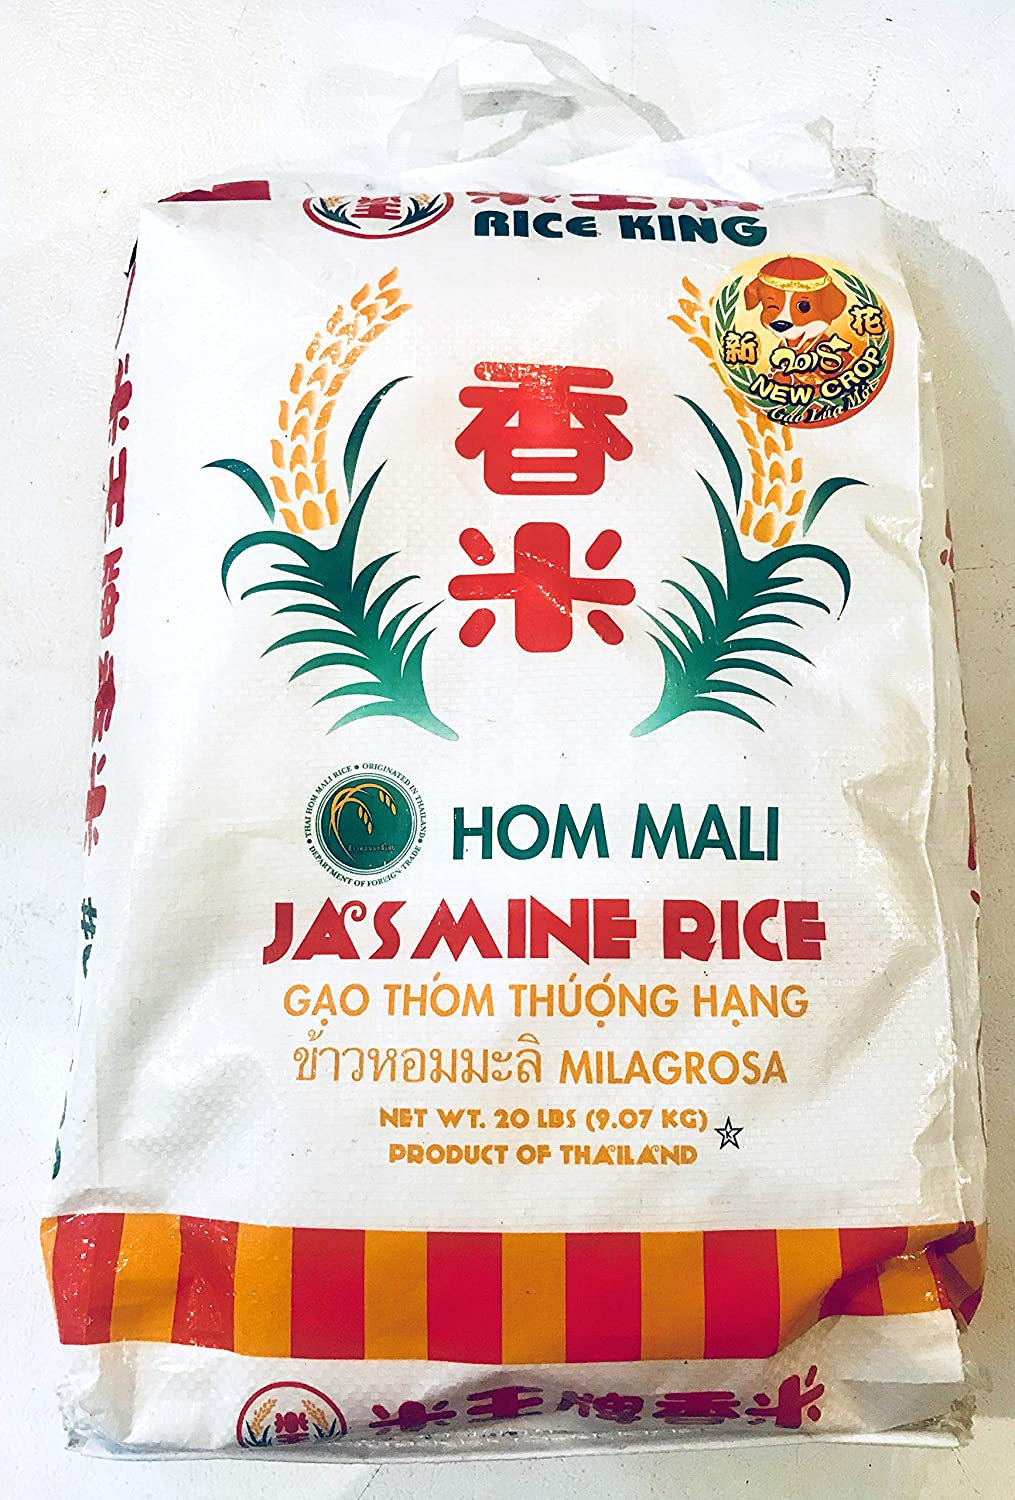 Rice King Hom Mali Jasmine Rice 20LB